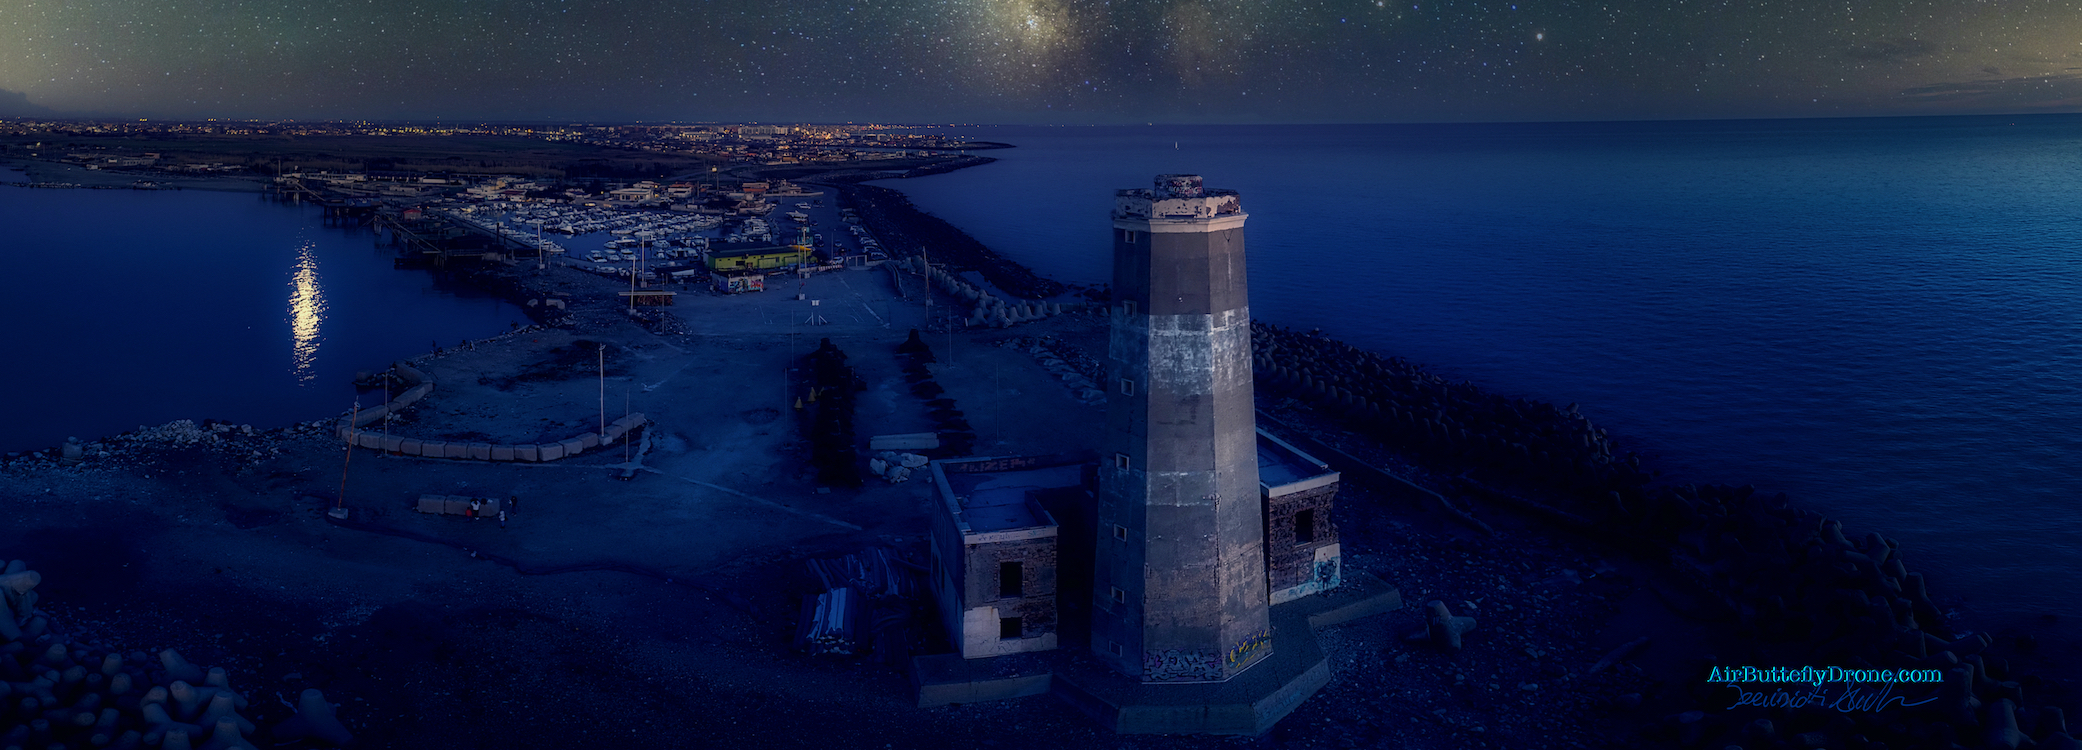 DJI lighthouse on the night  ALEX.jpeg